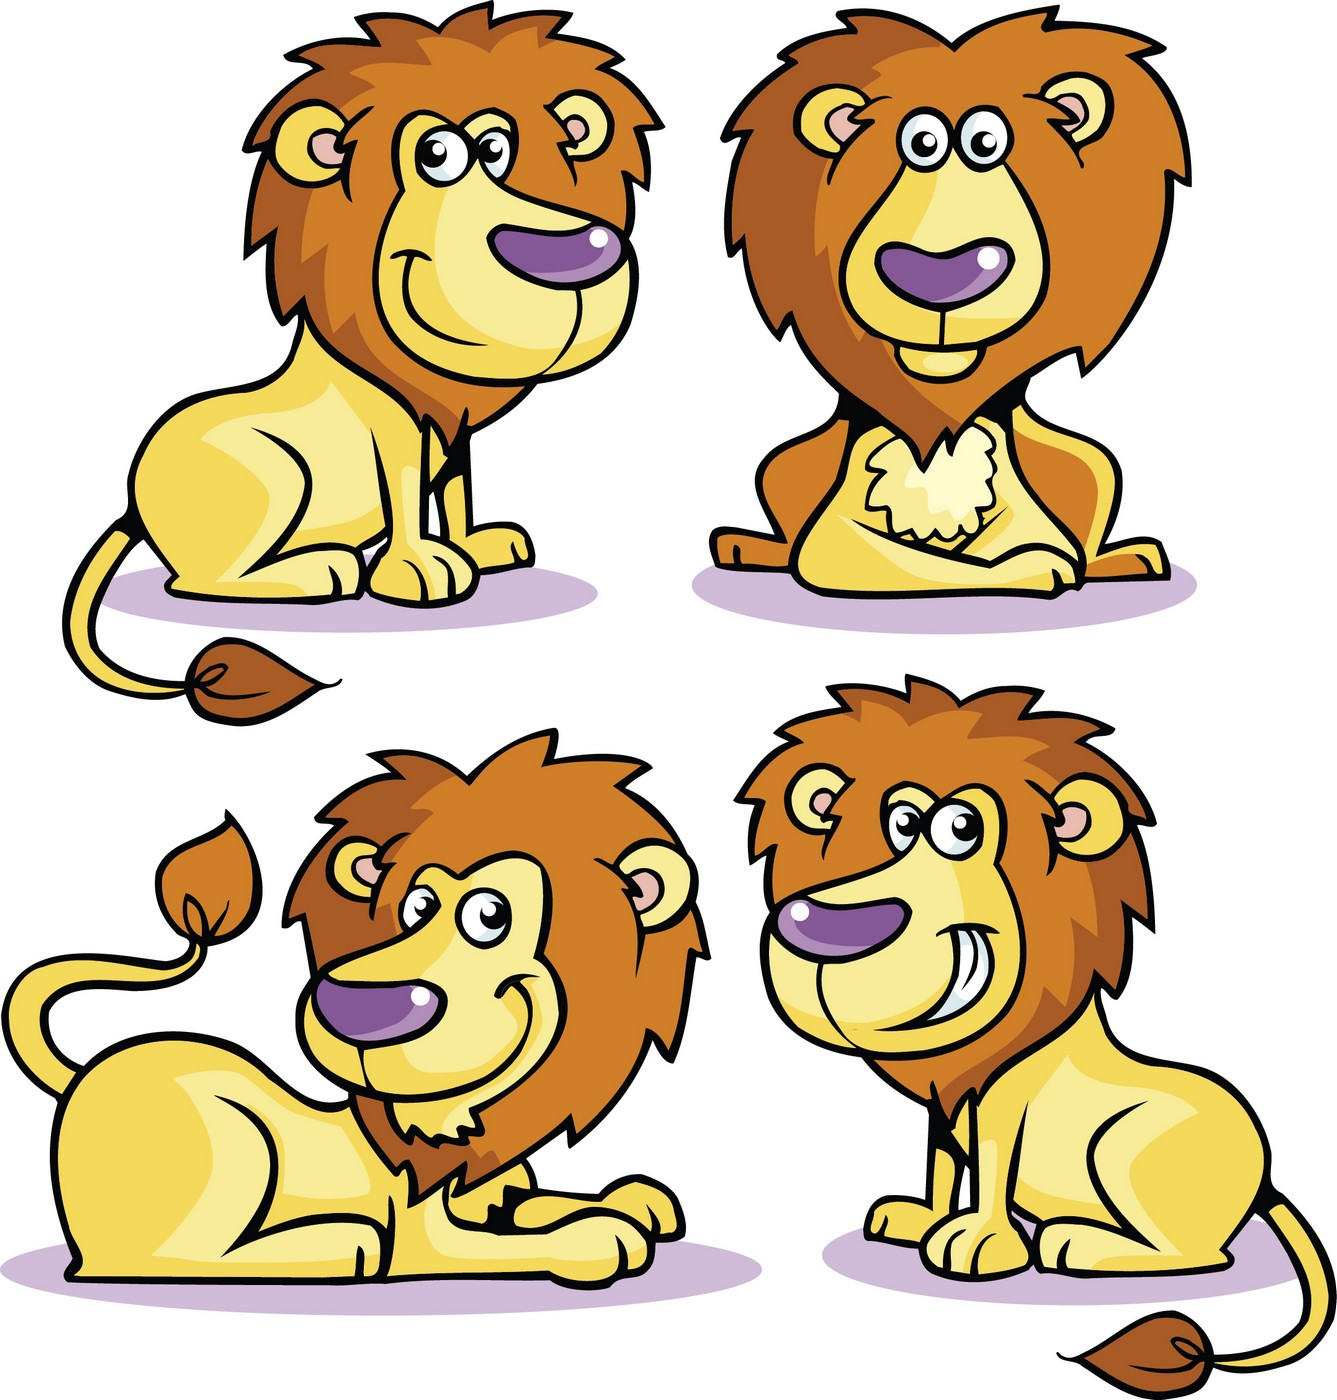 Animals cartoon drawing lion - photo#6